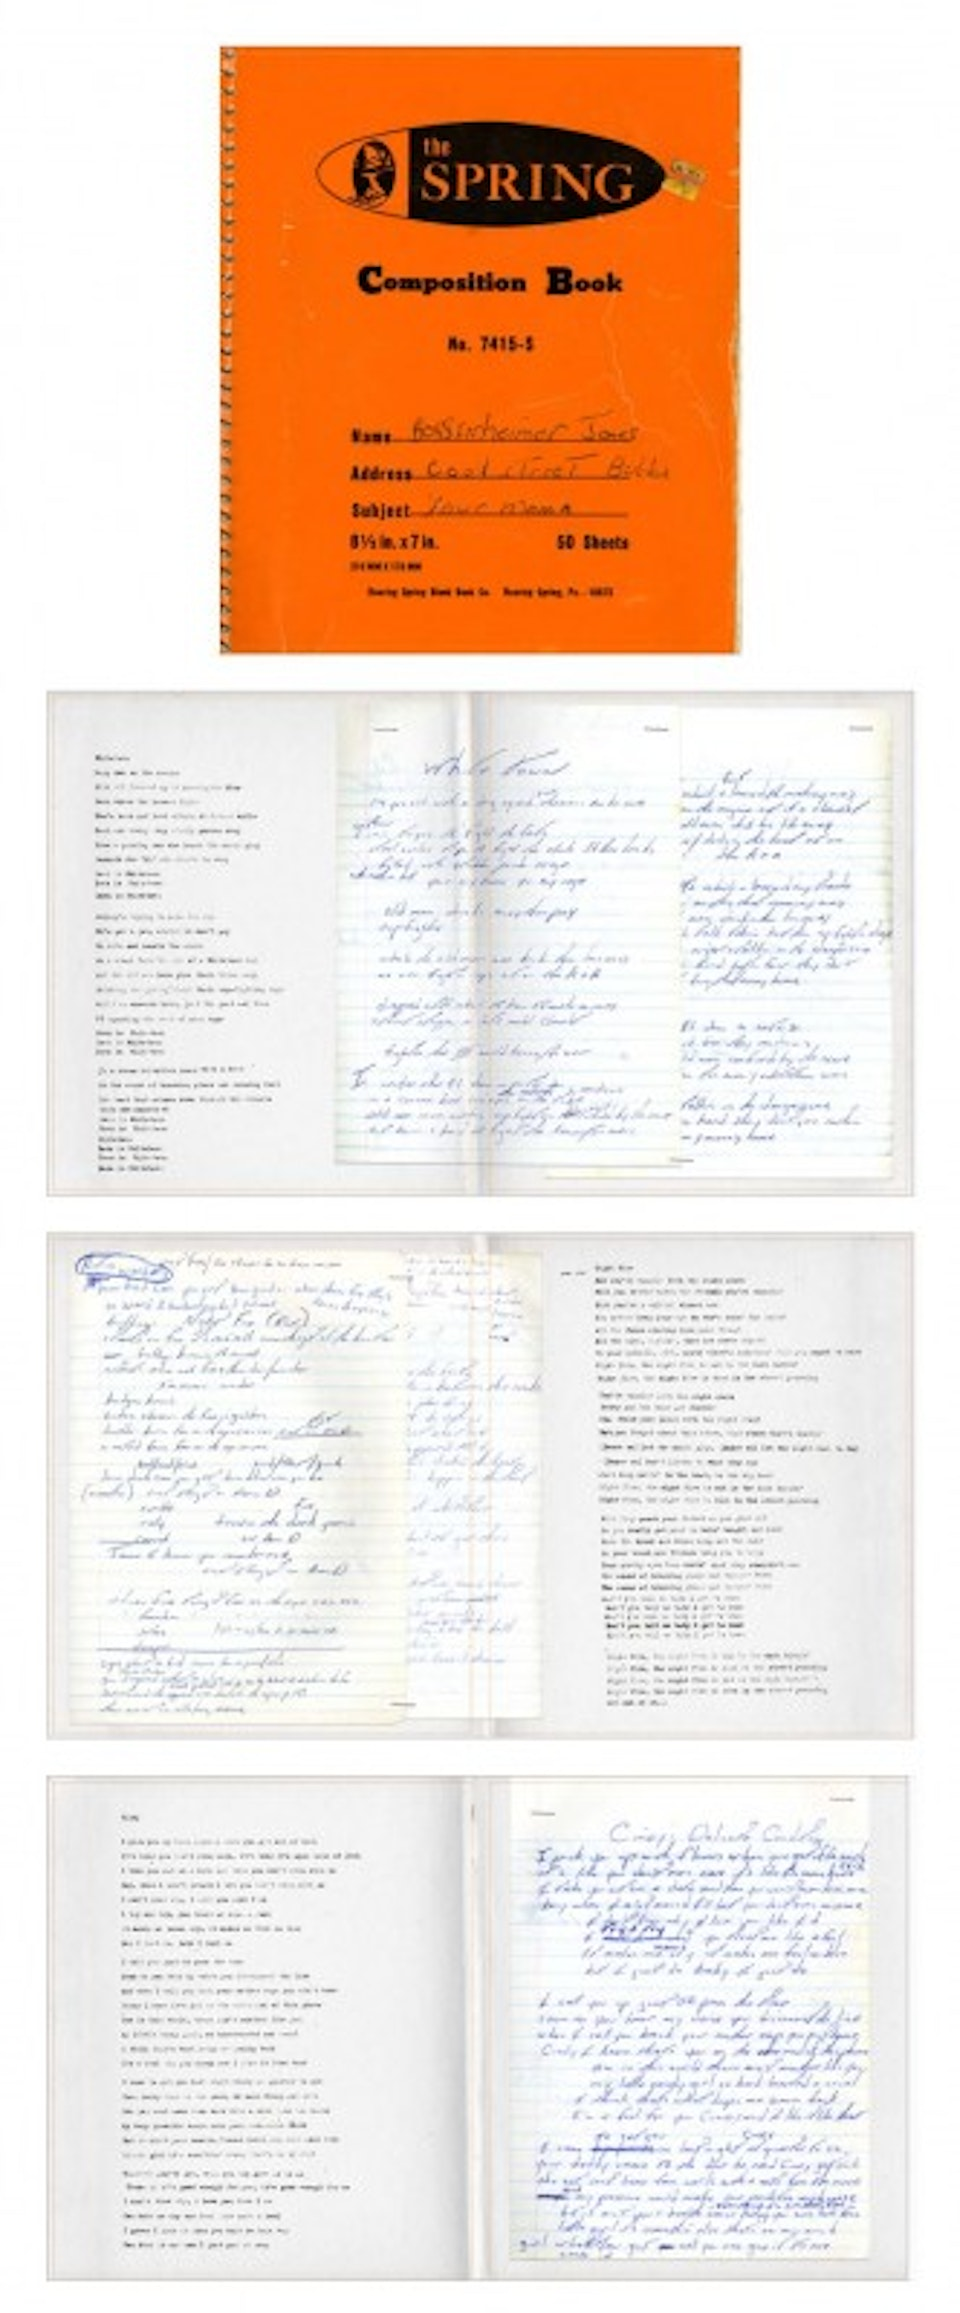 The River Set Box - Sample spreads from lyric book